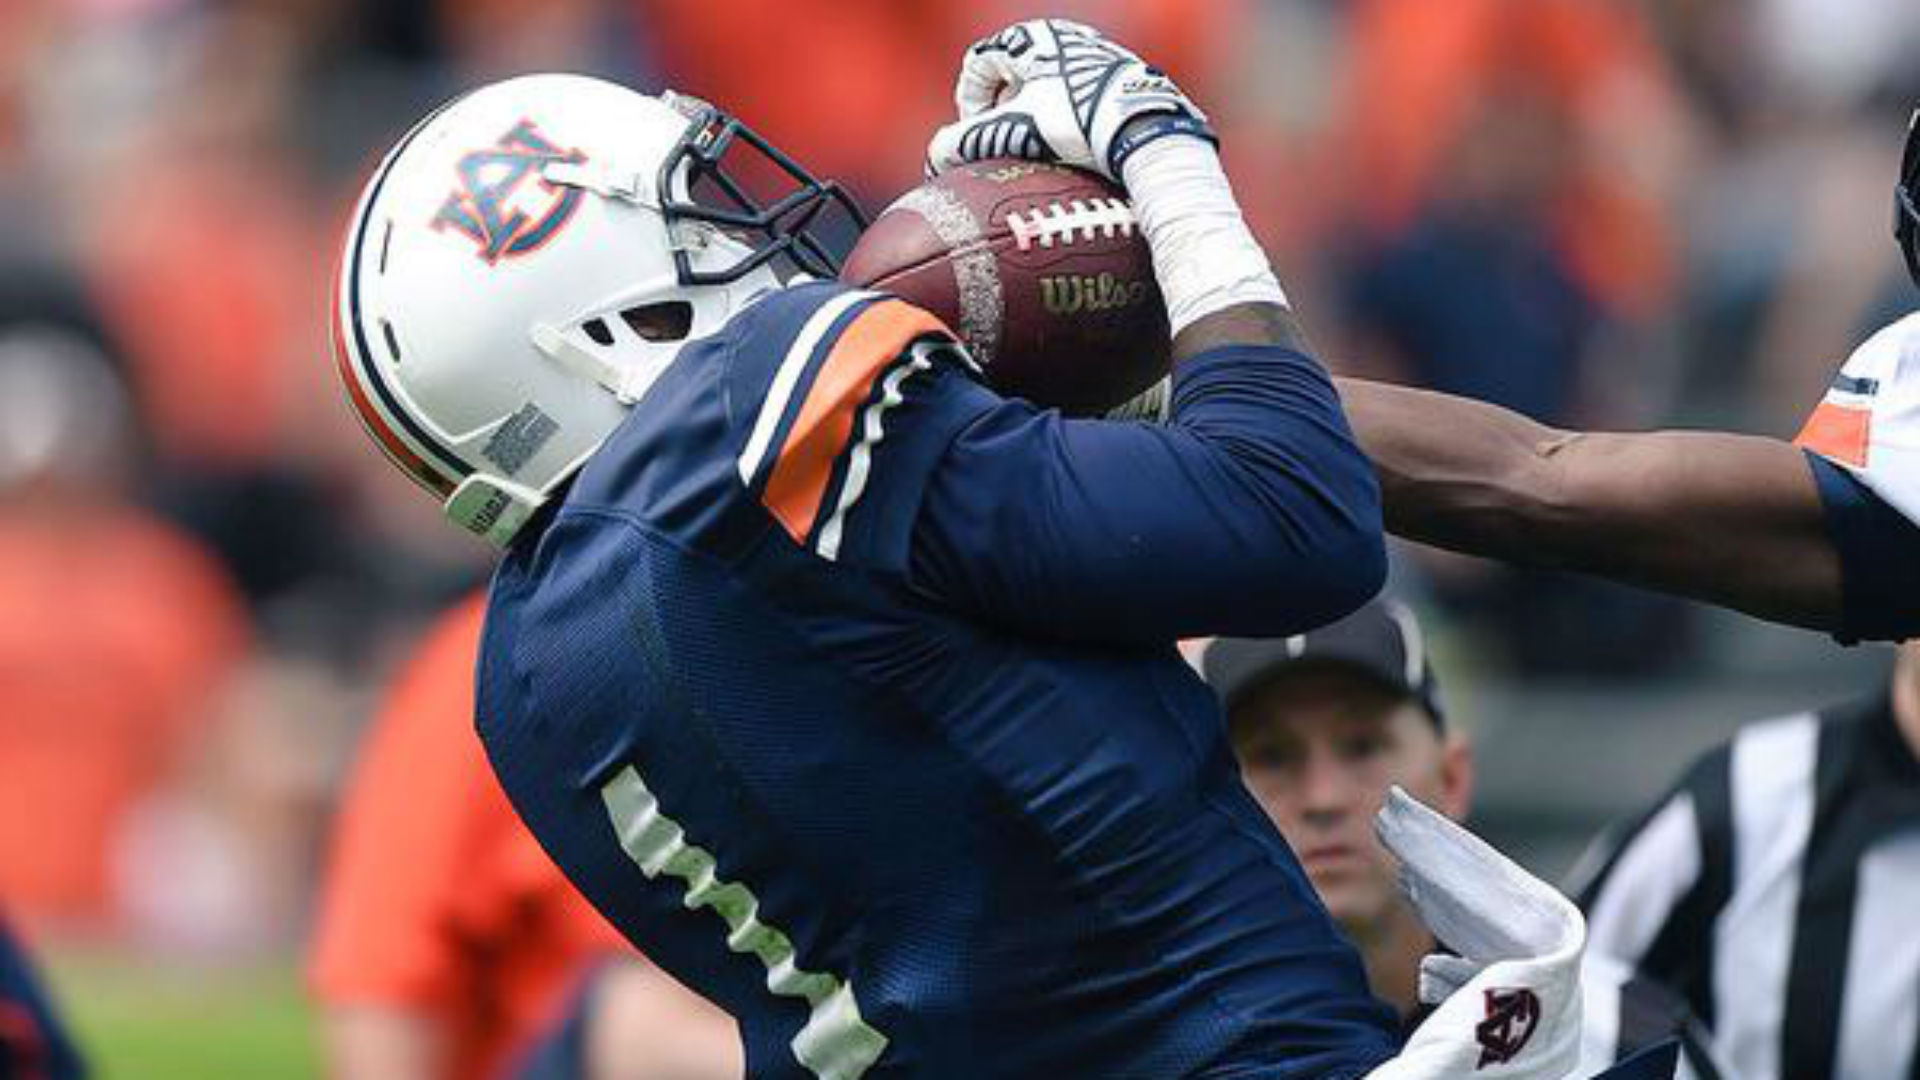 Duke Williams' return comes with lofty expectations at Auburn